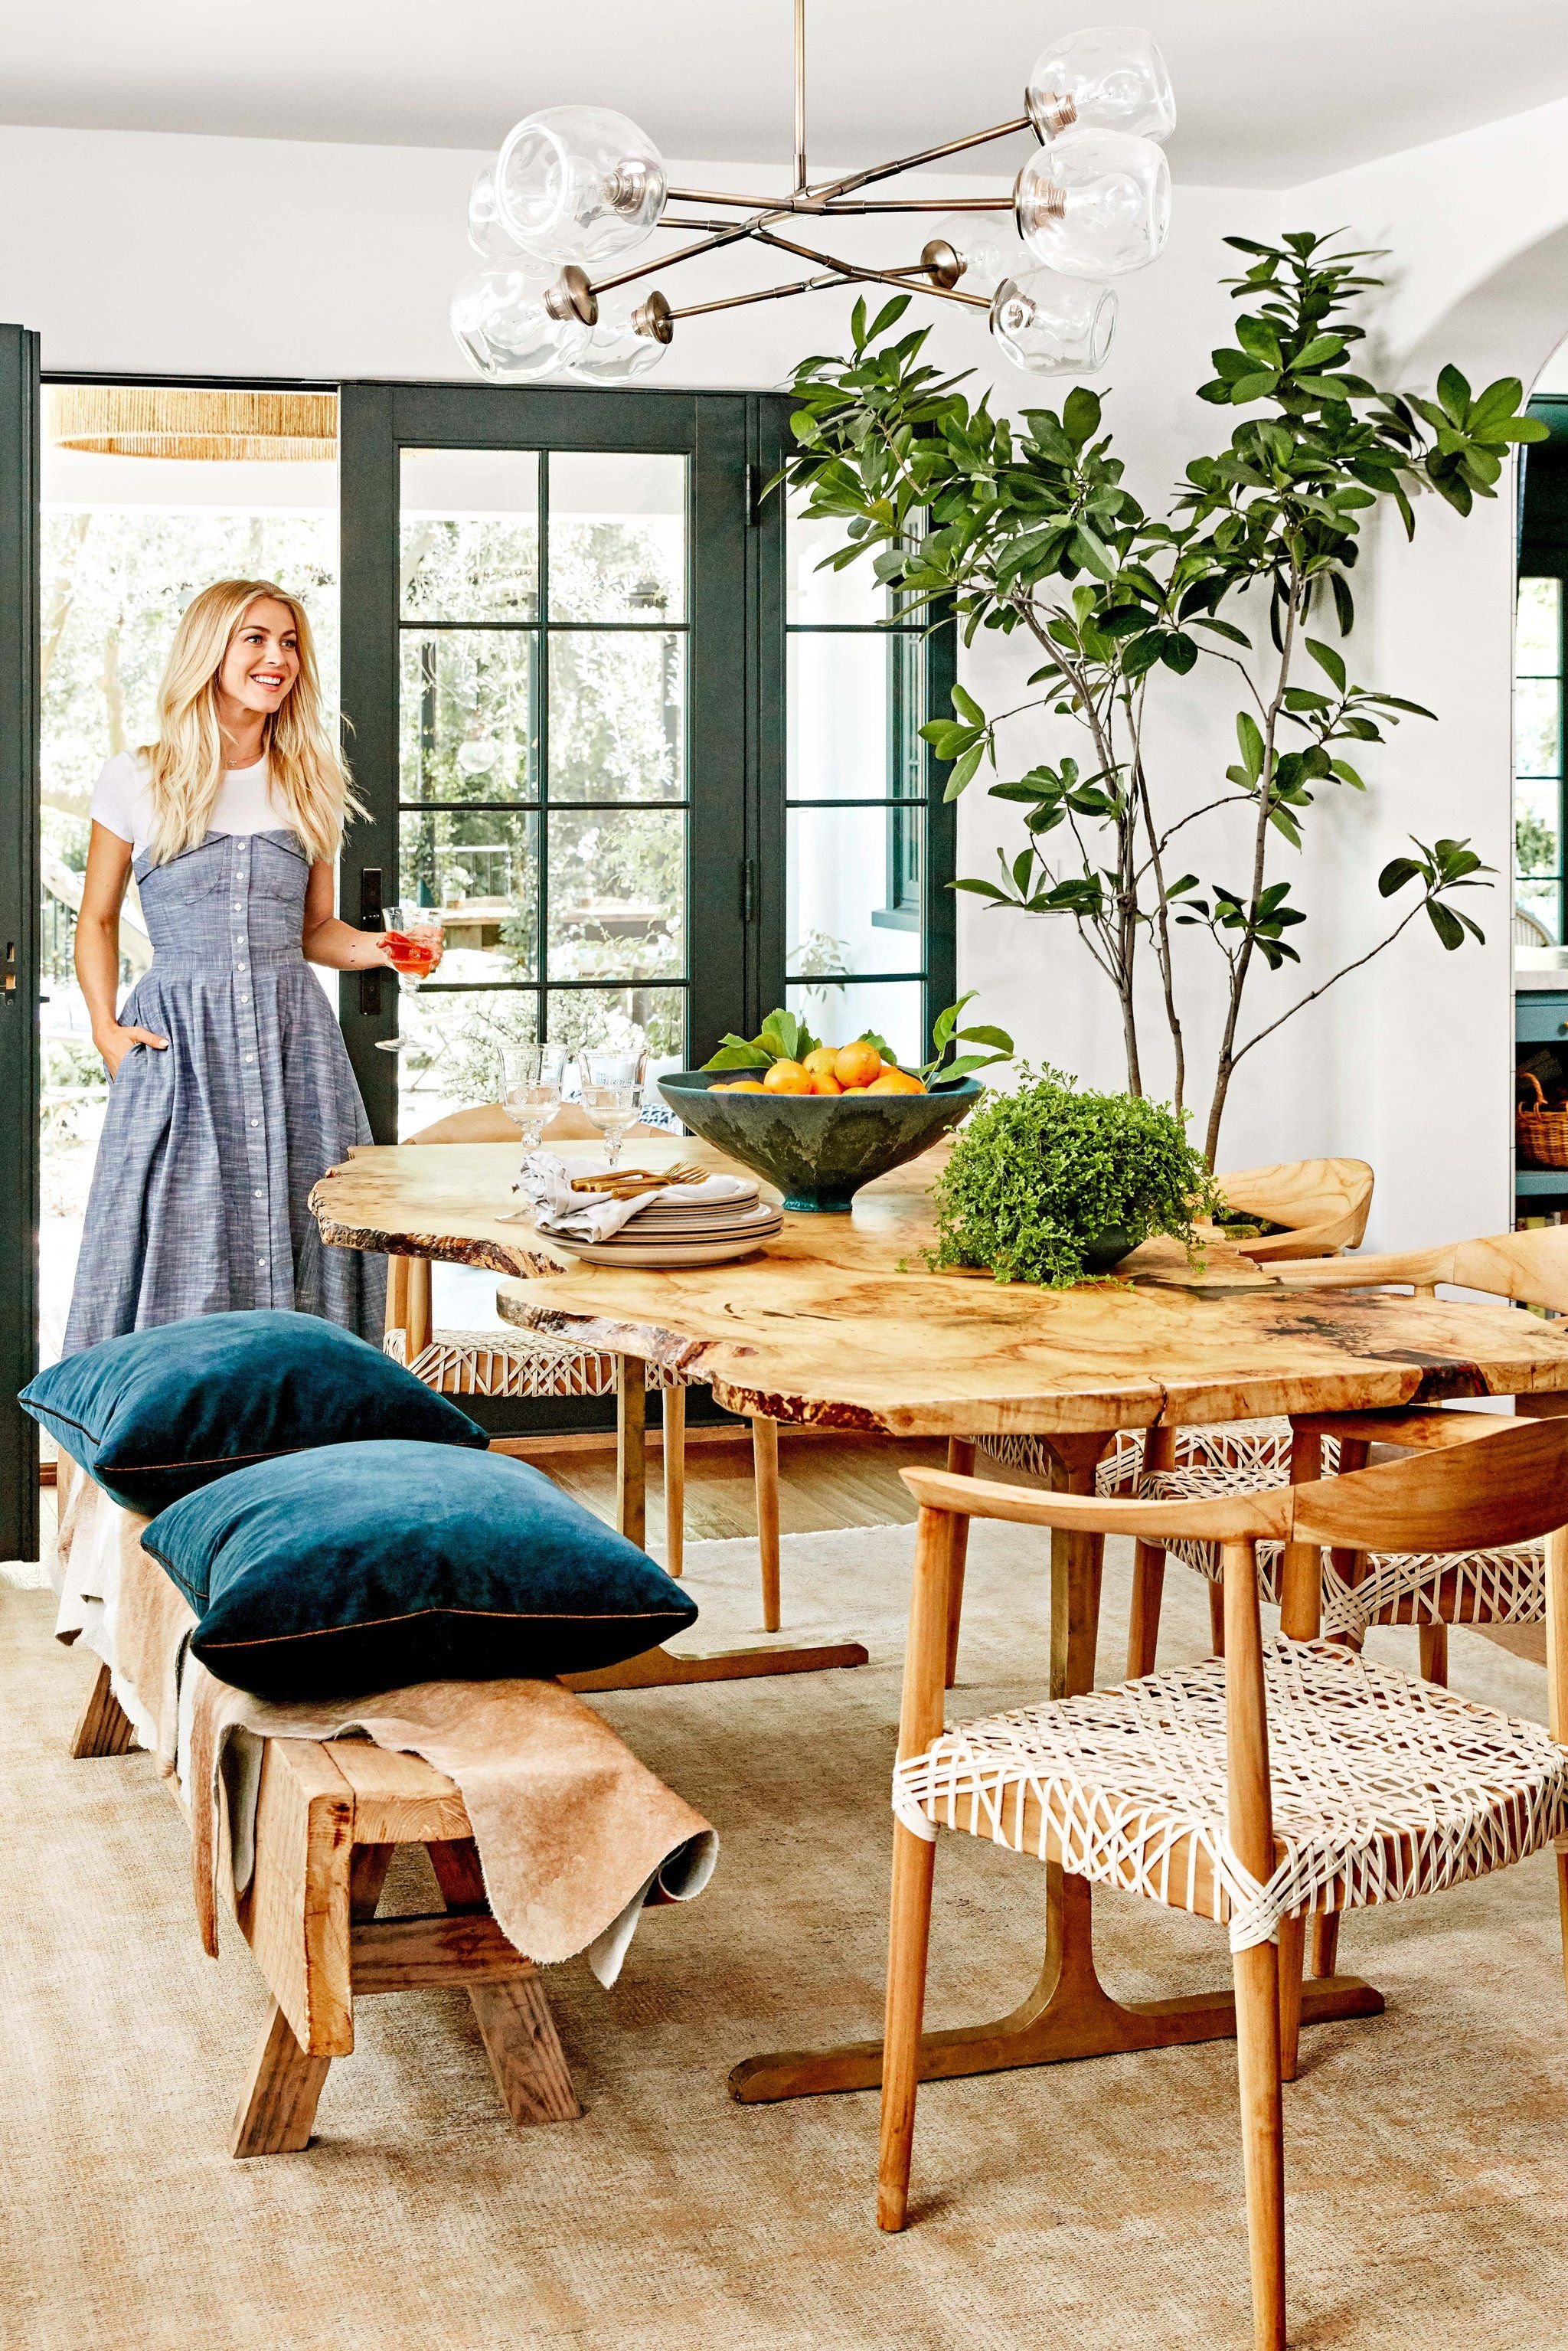 julianne hough's 1 secret to decorating a home that never goes out, Wohnzimmer dekoo